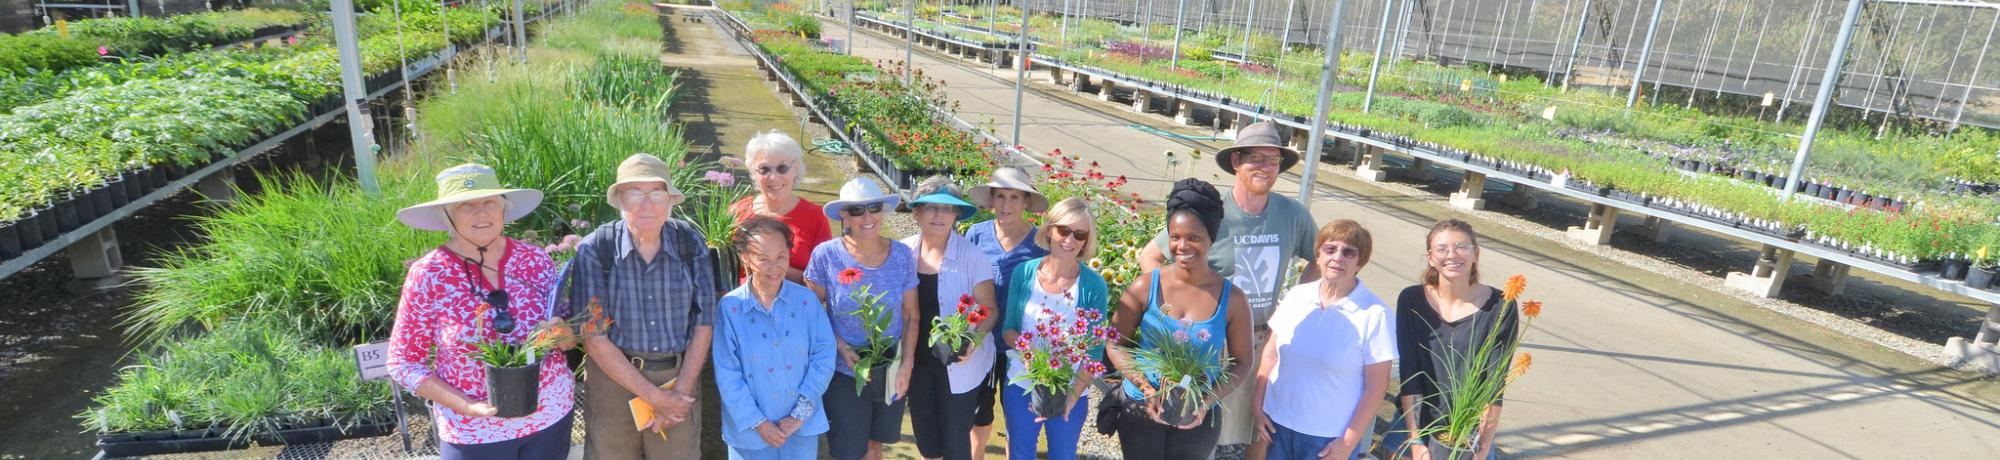 Image of students, volunteers and staff in the Arboretum Teaching Nursery.